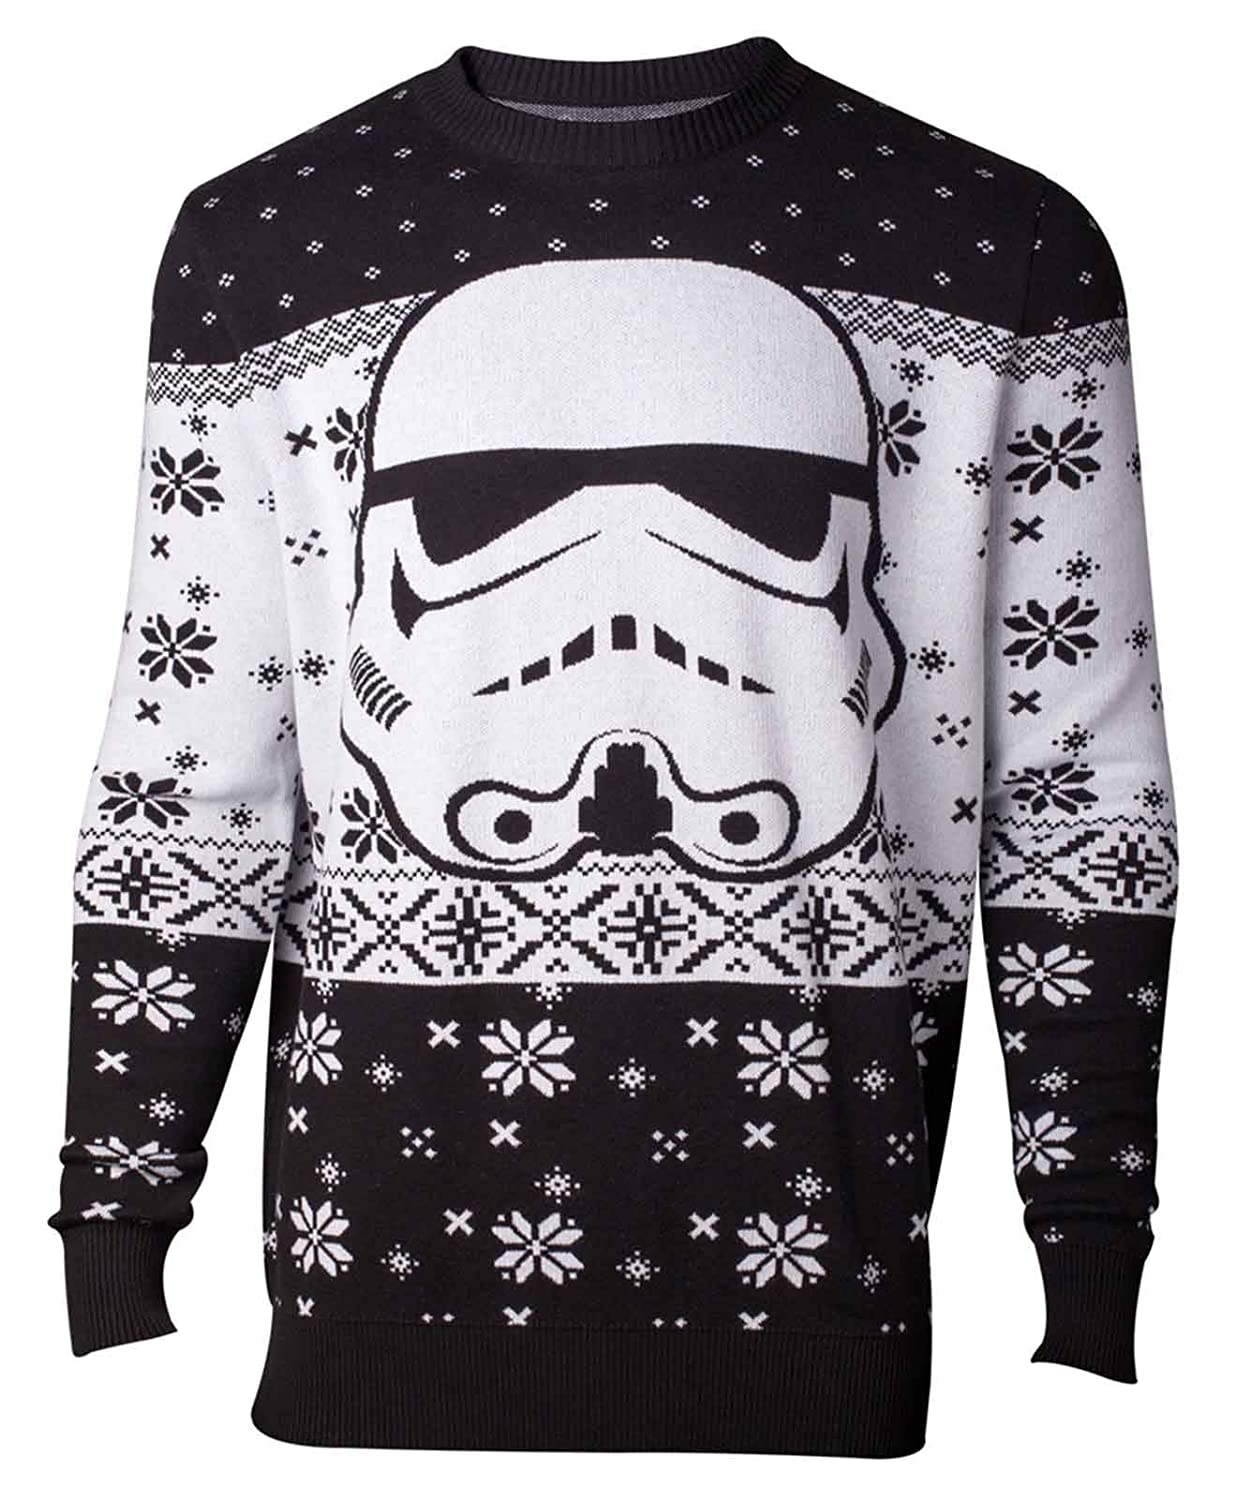 Star Wars Christmas Jumper Sweater Stormtrooper Head Official Mens Knitted Star Wars Merch